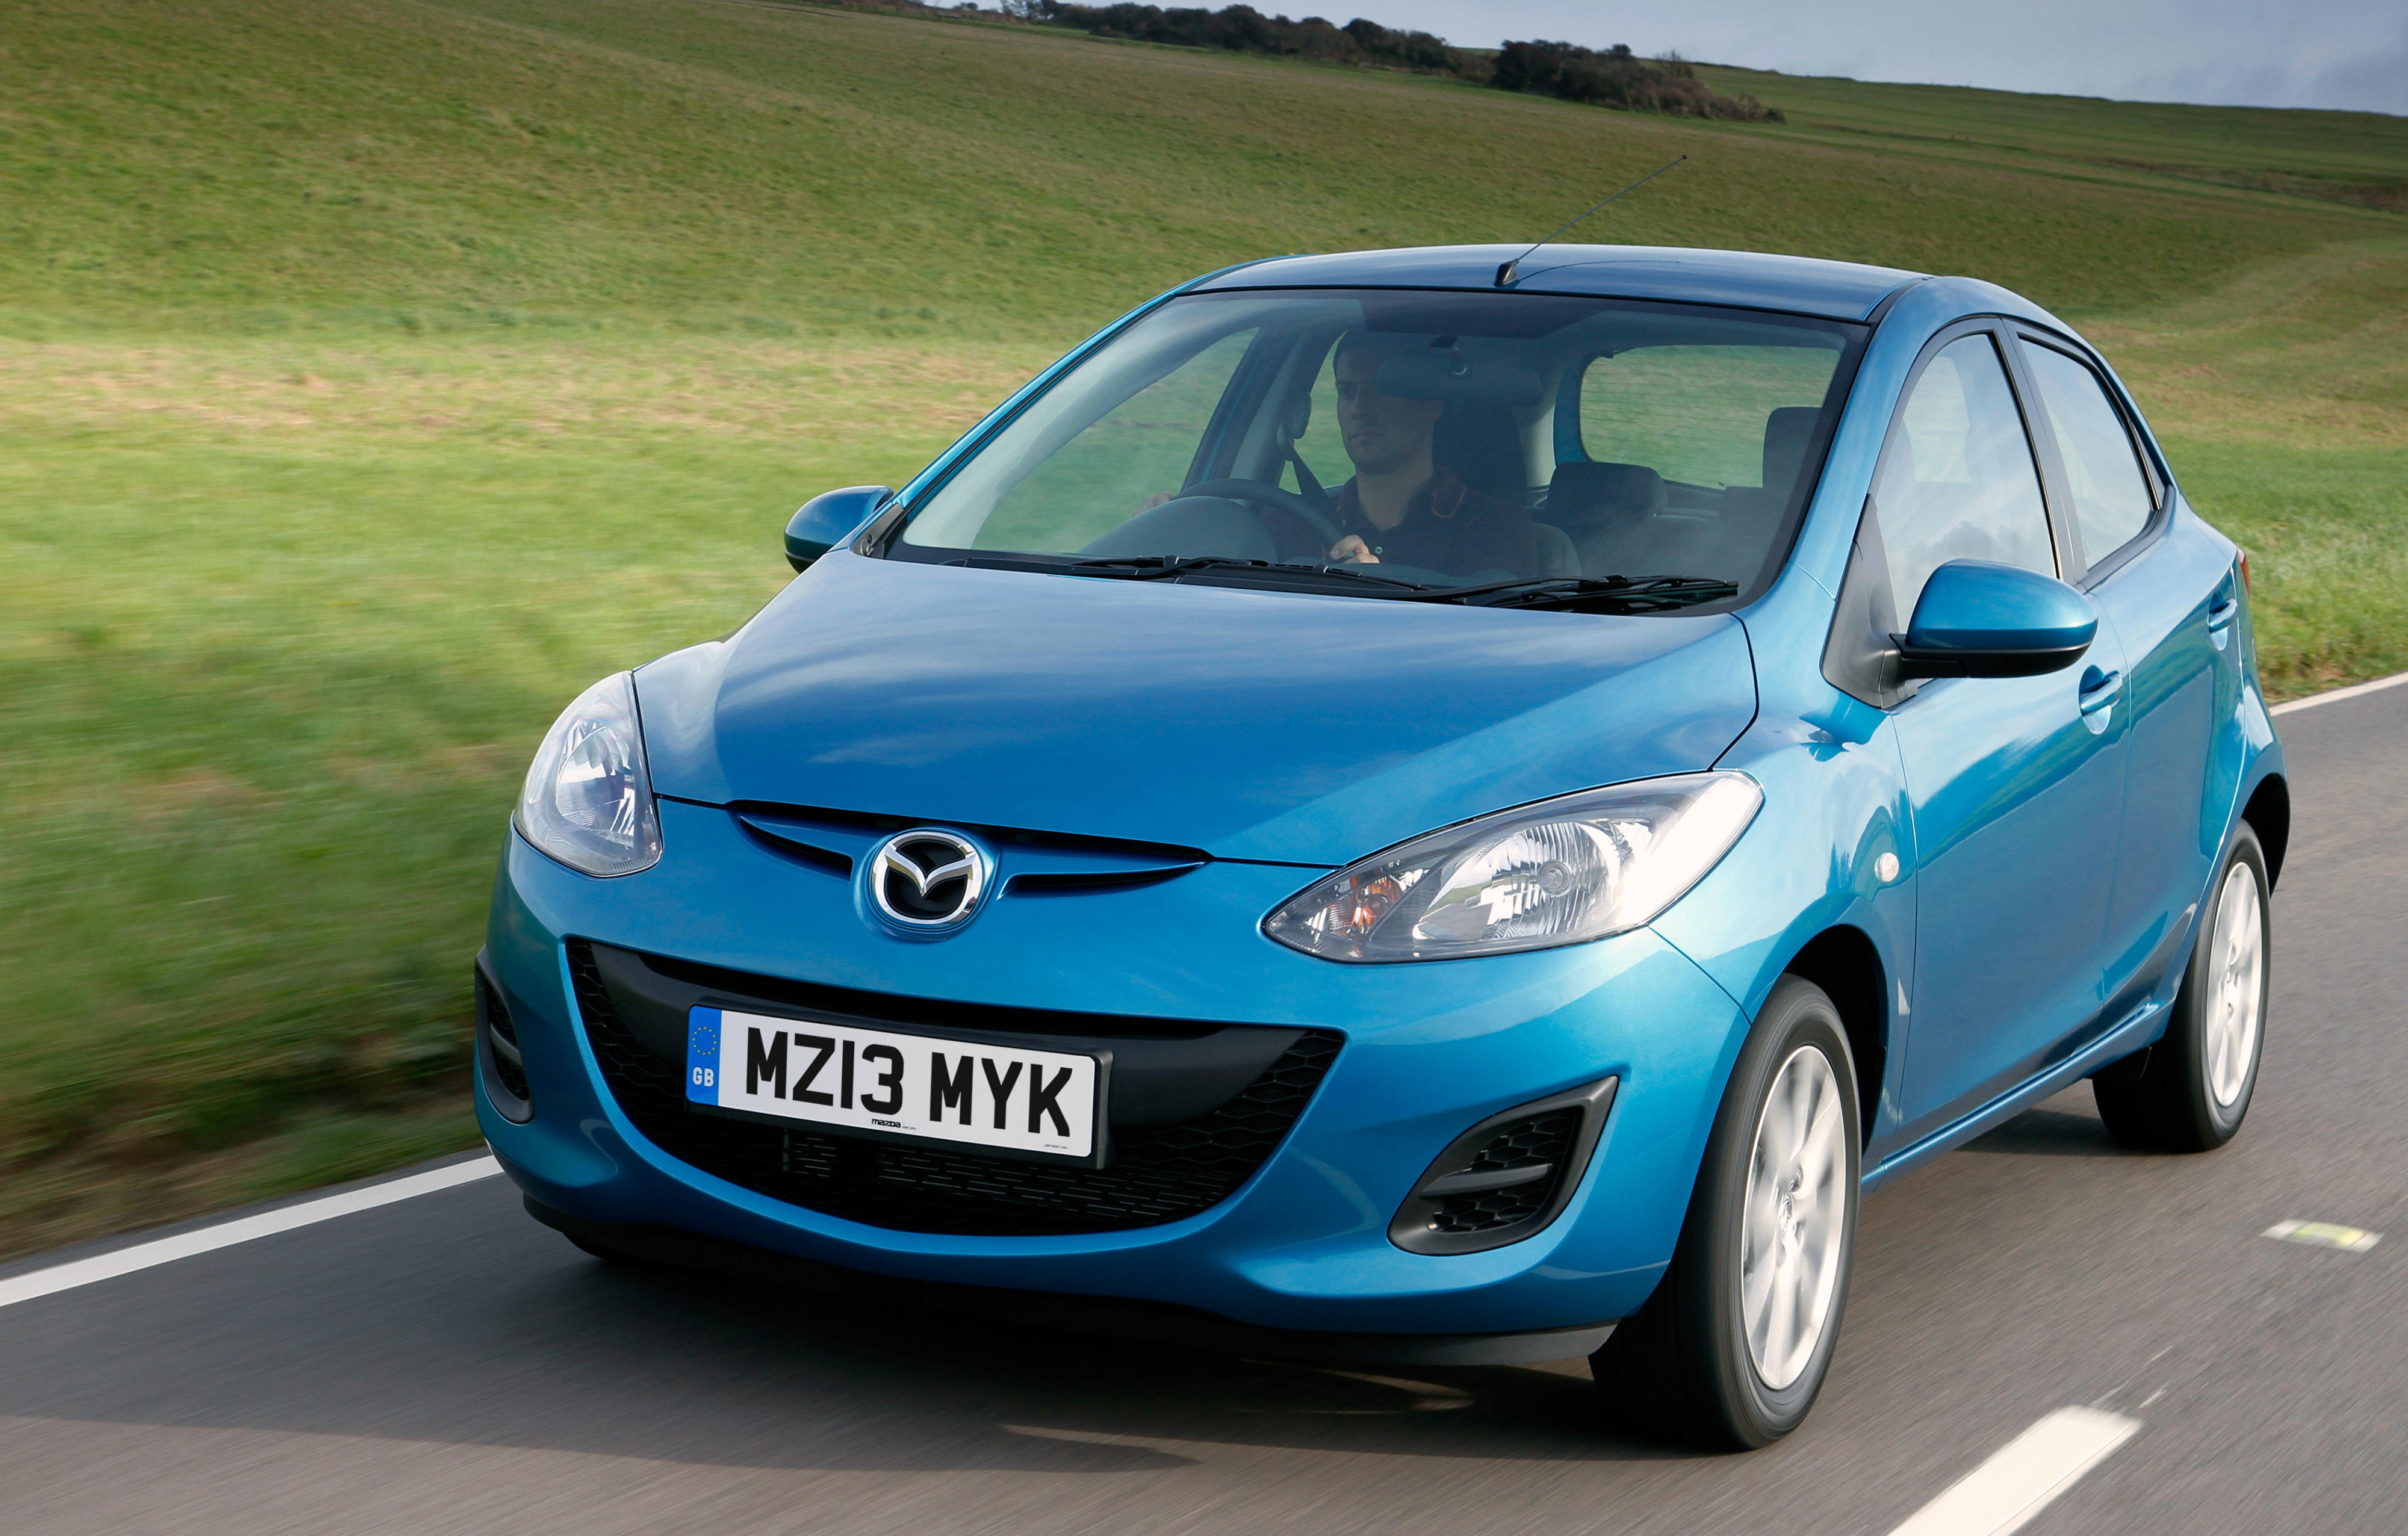 Mazda2 is most reliable supermini according to What Car? readers